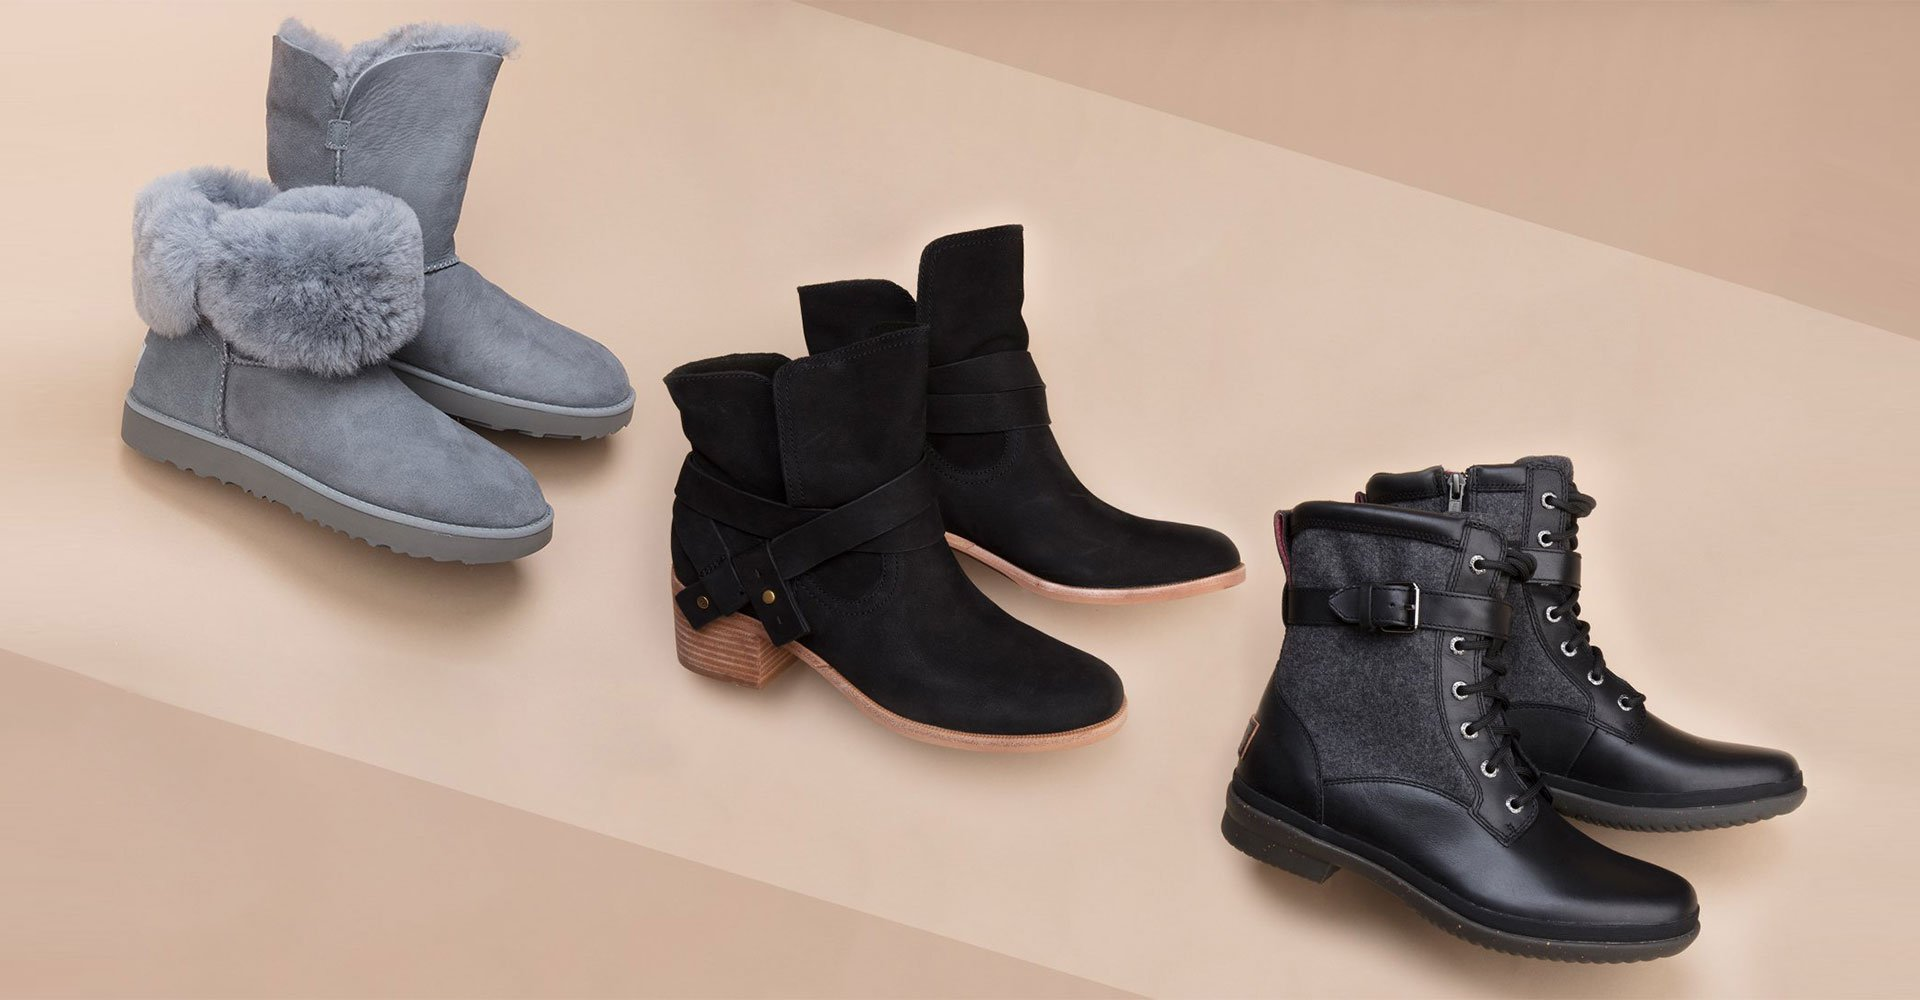 An image of three different new UGG boot styles with a rose colored background.